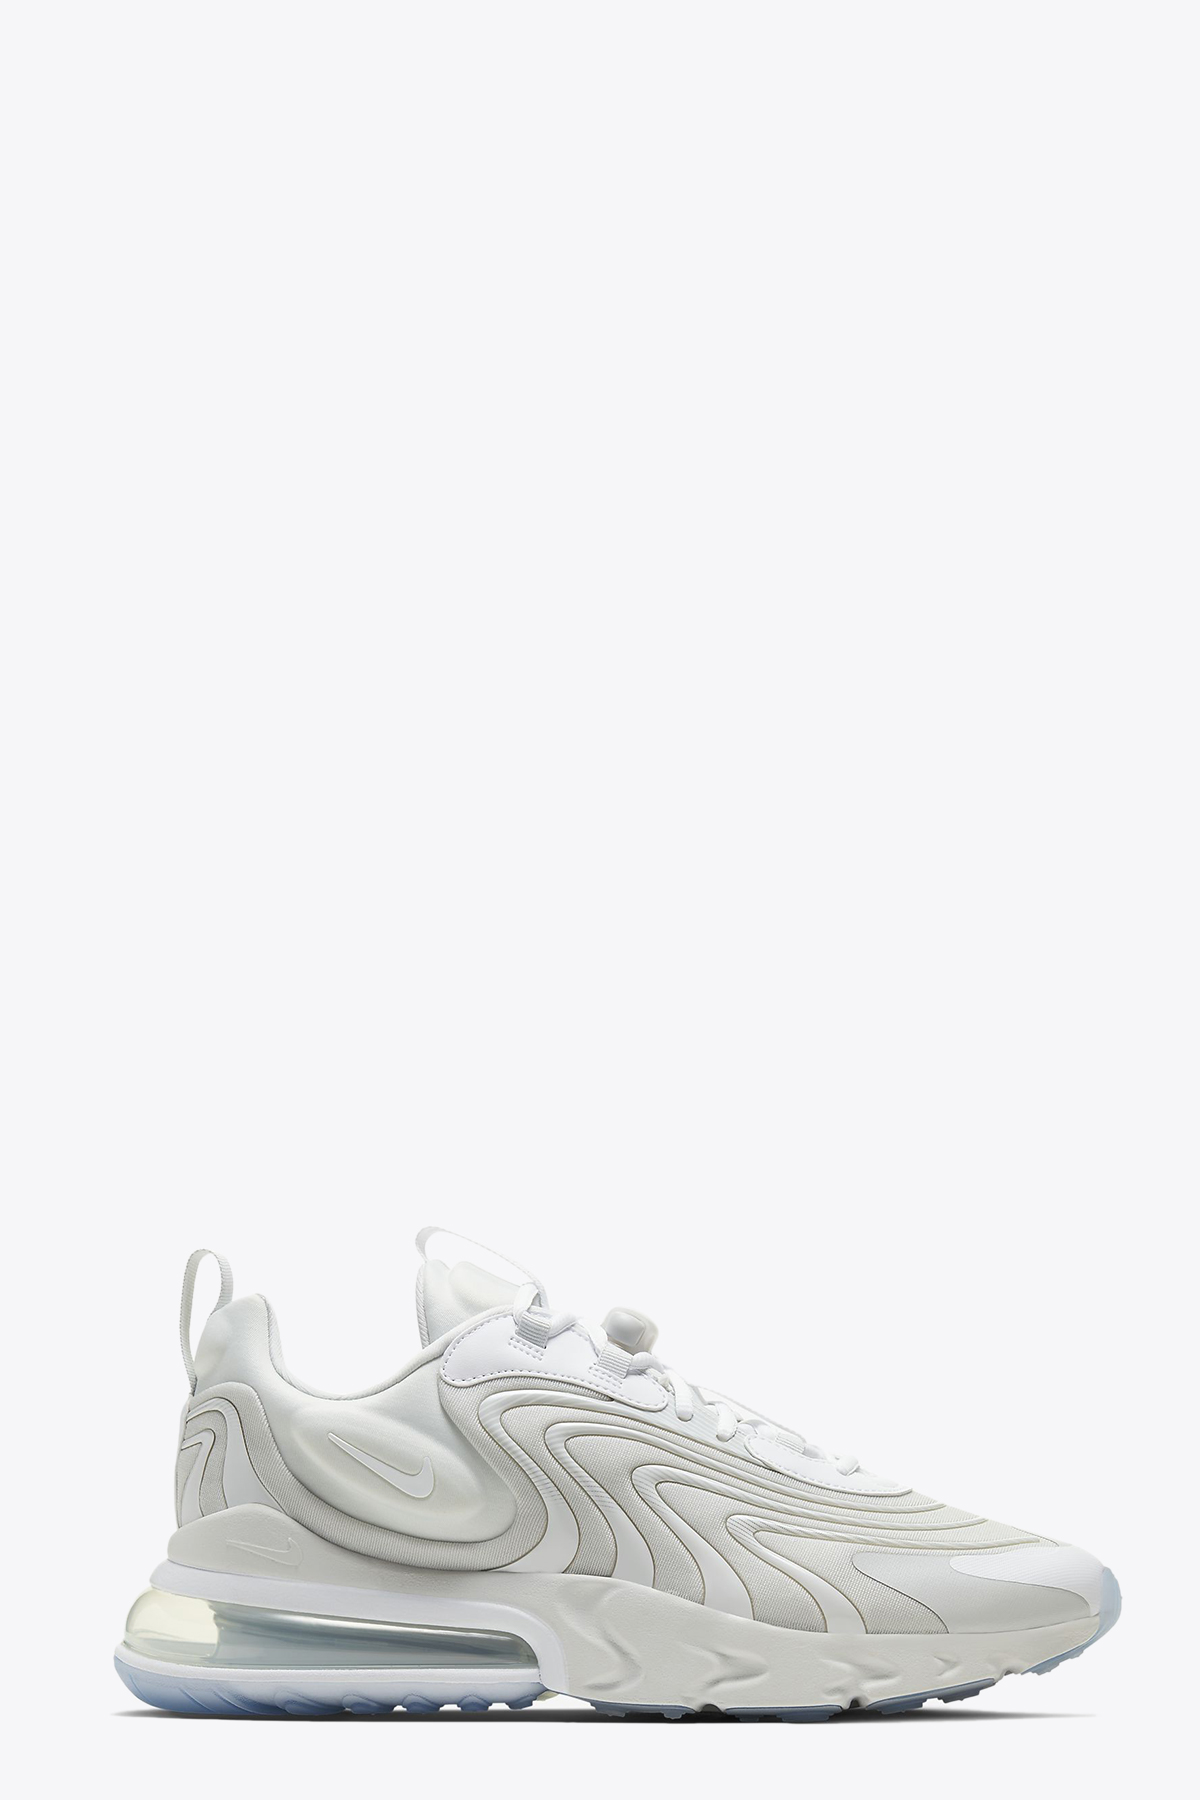 NIKE | 10000039 | CJ0579-002 AIR MAX 270 REACT ENGWHITE